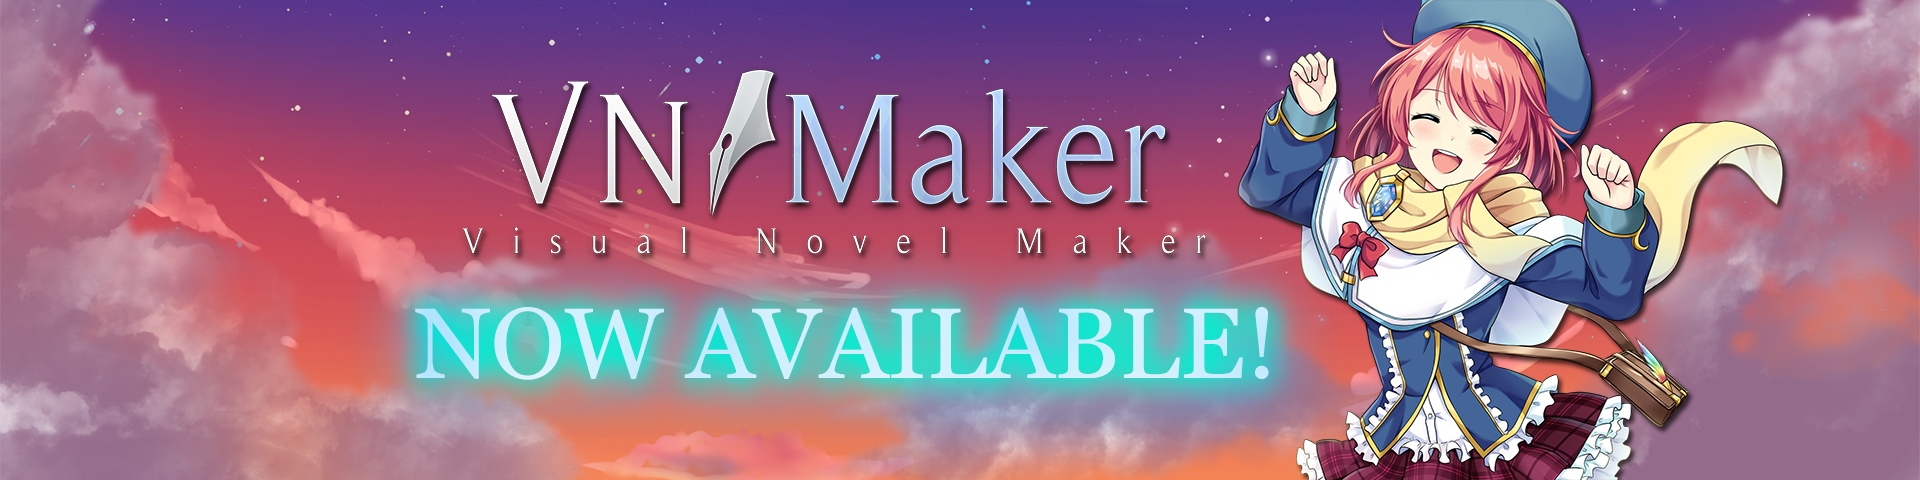 Visual Novel Maker now available!